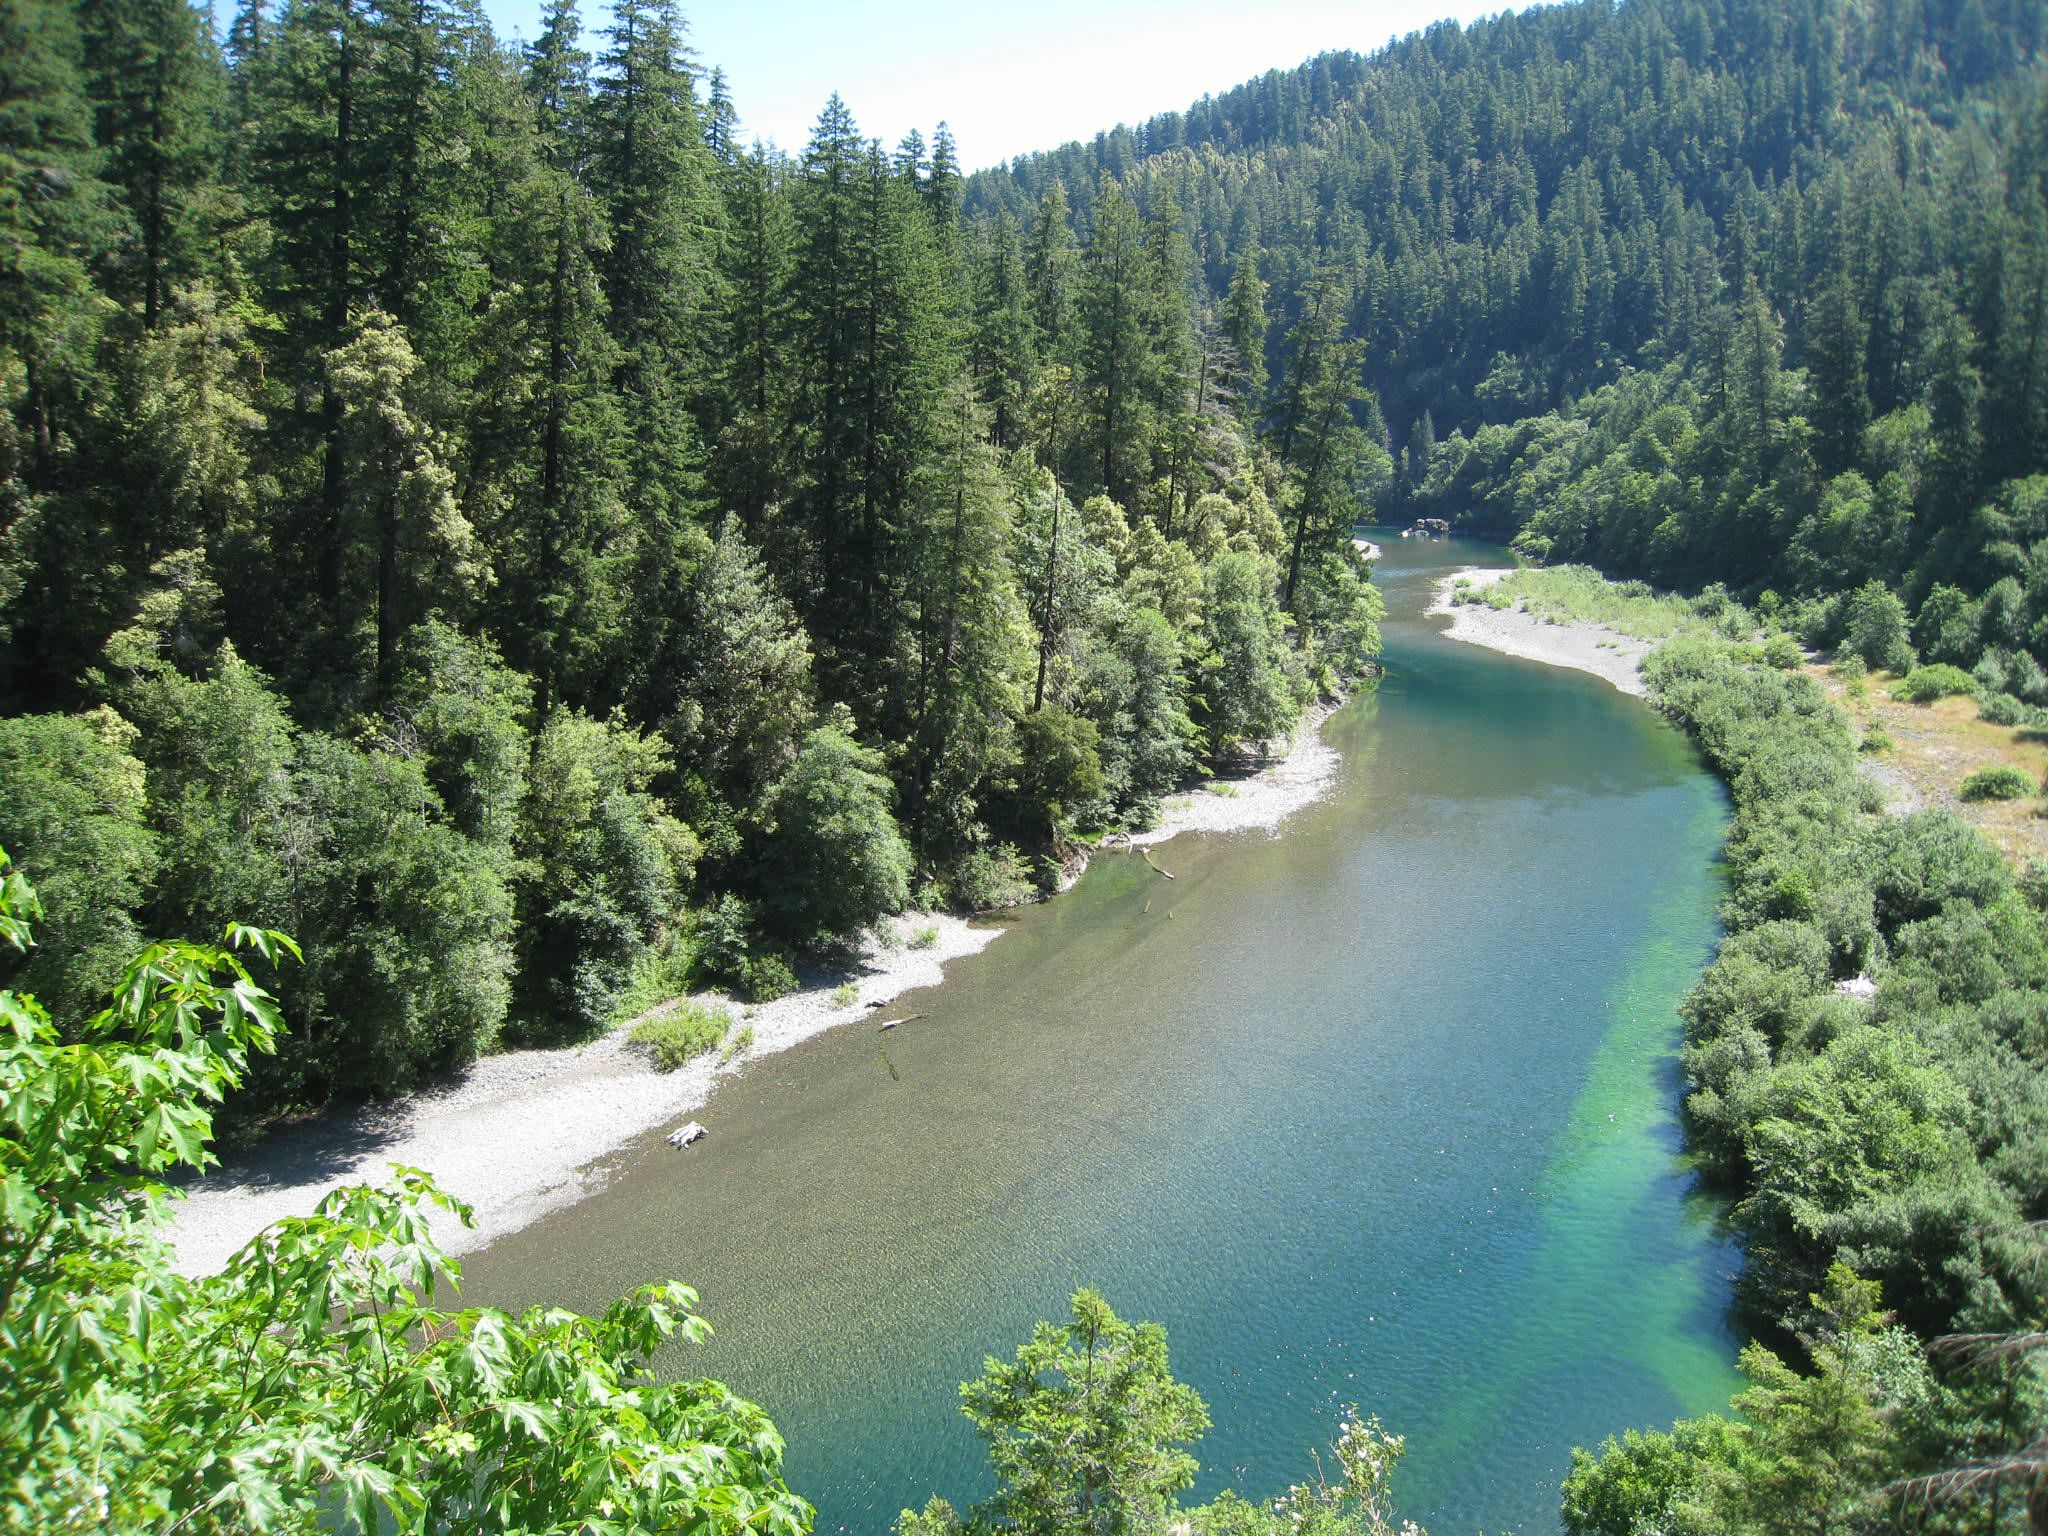 The chetco river inn vacation rentals brookings oregon inns for Chetco river resort cabins brookings oregon